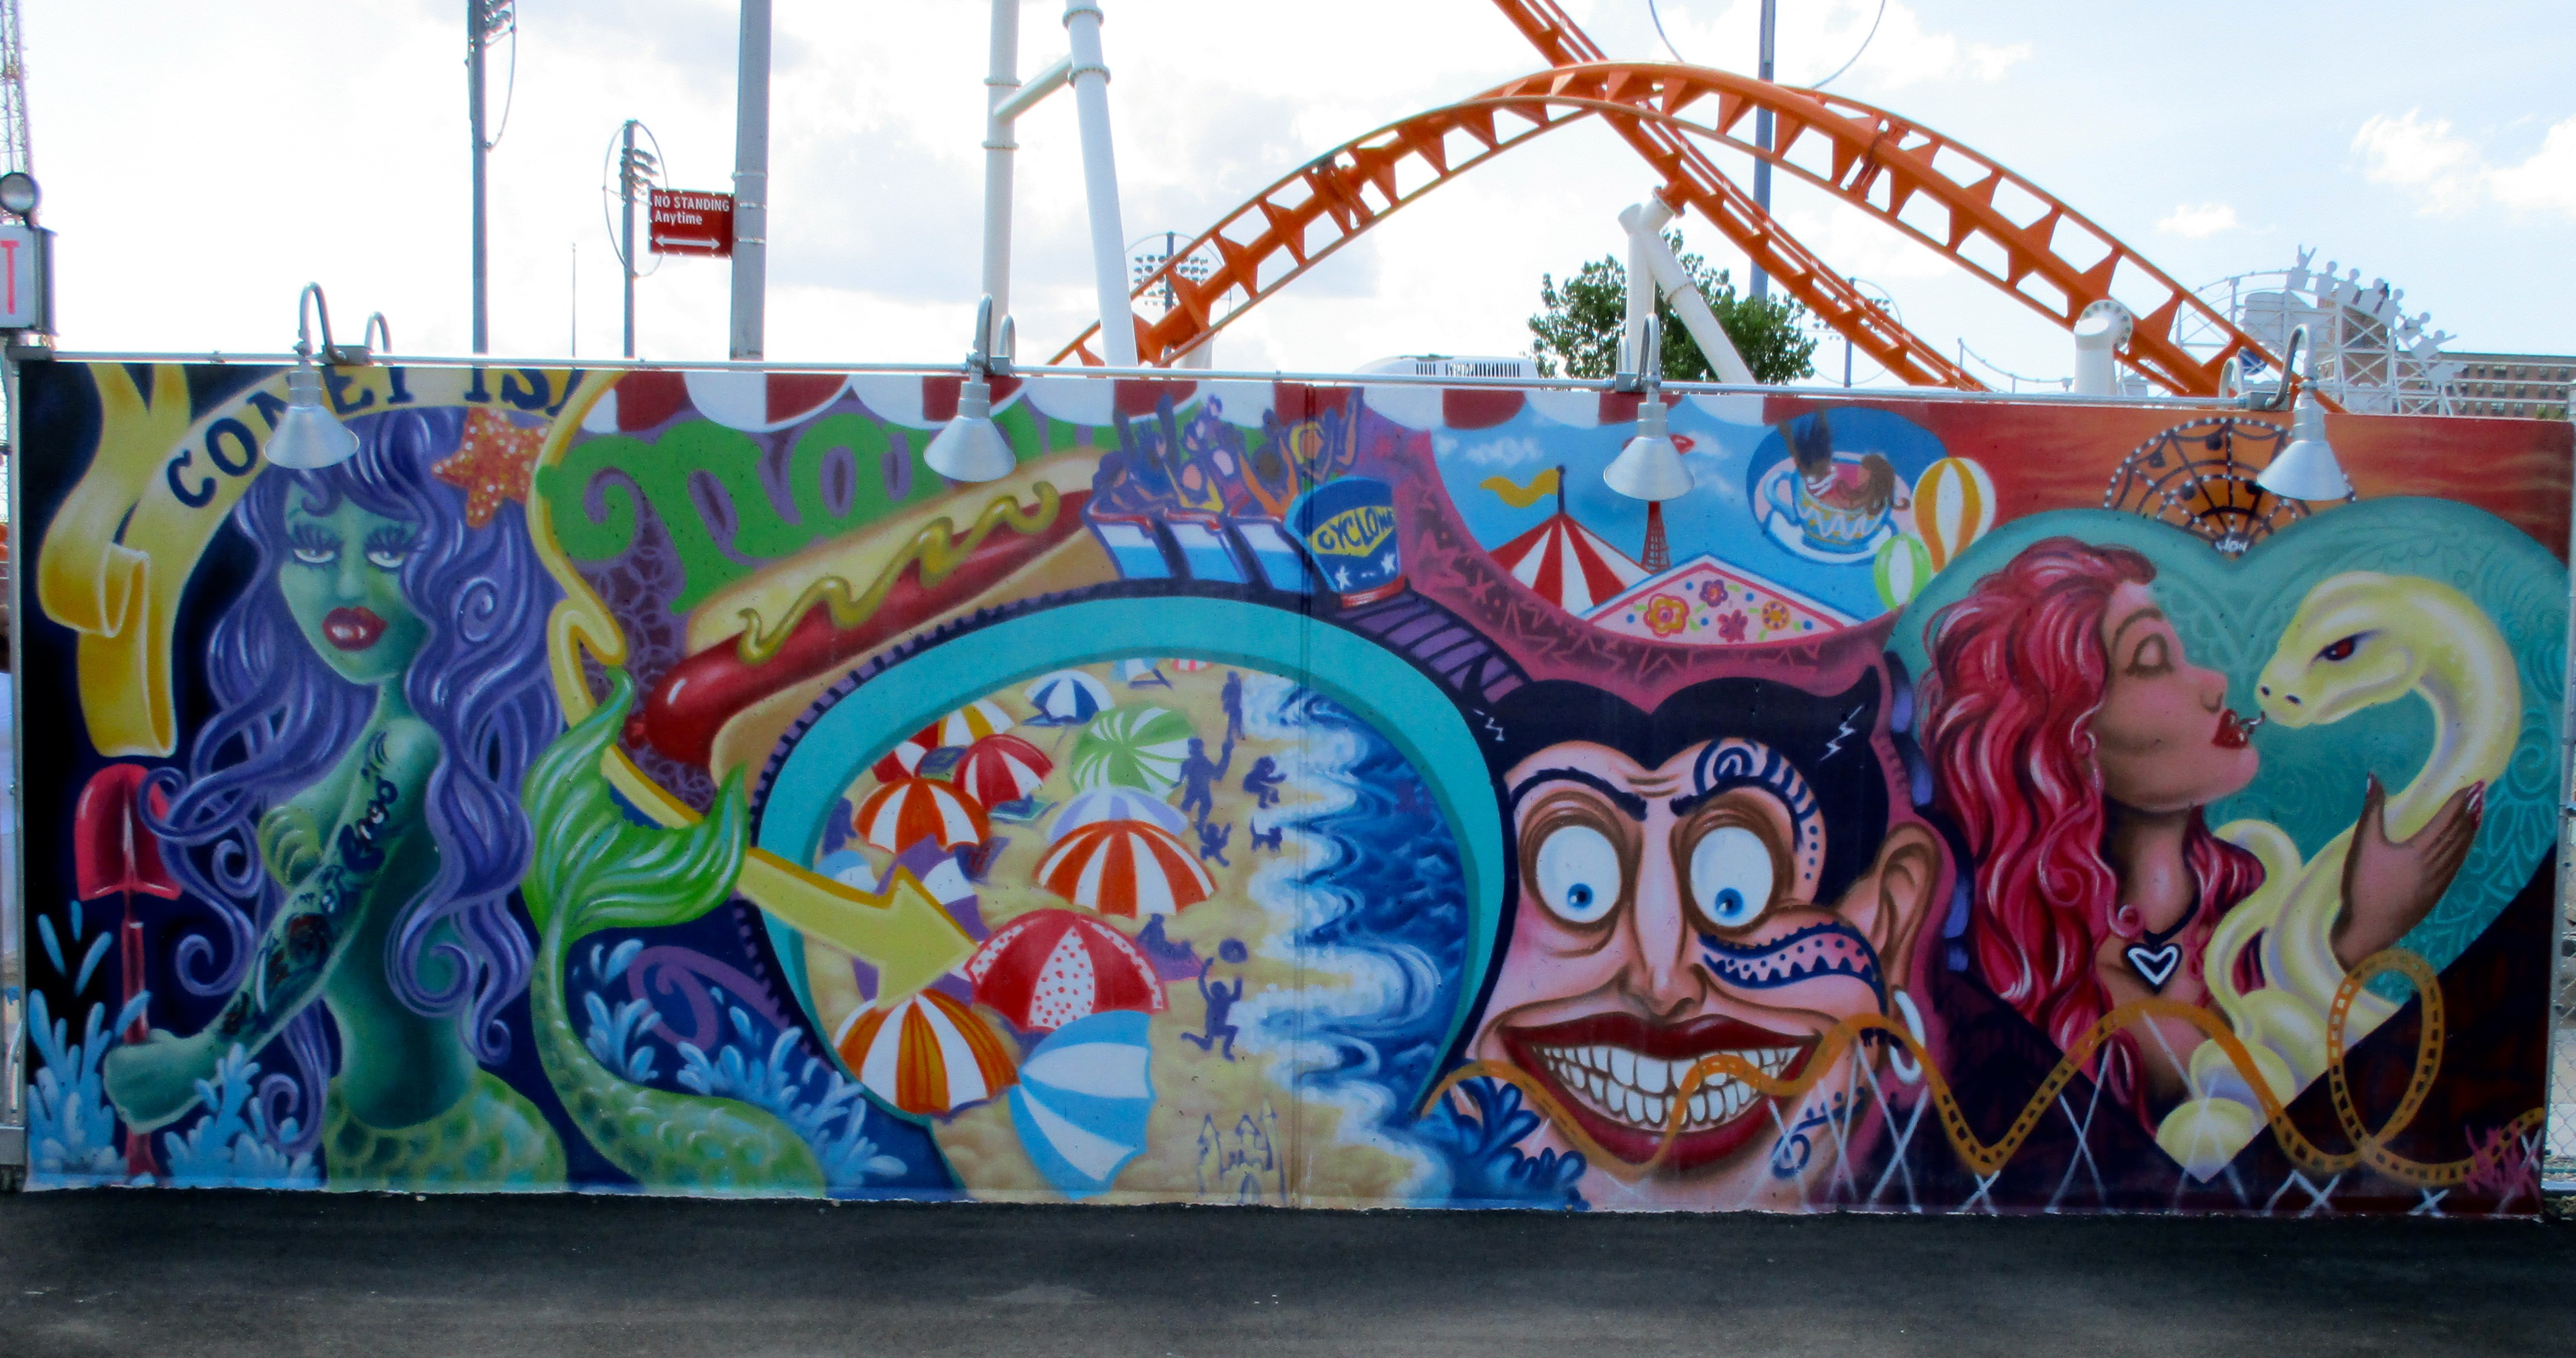 Visit the coney island art walls the worley gig for Coney island mural